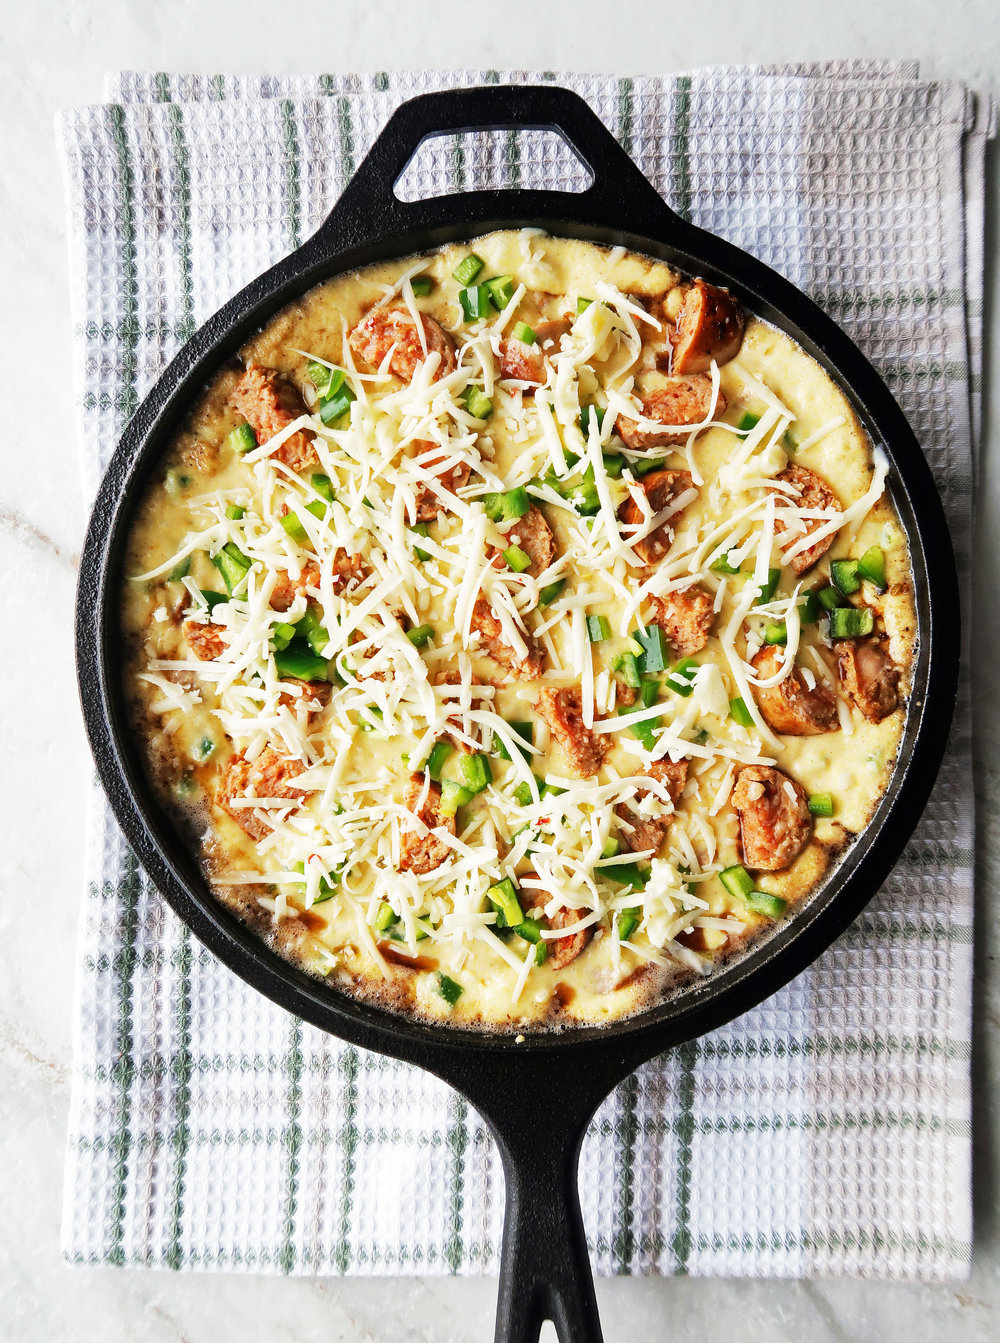 Jalapeño maple and sausage cornbread batter spread on a cast-iron skillet topped with cheese.